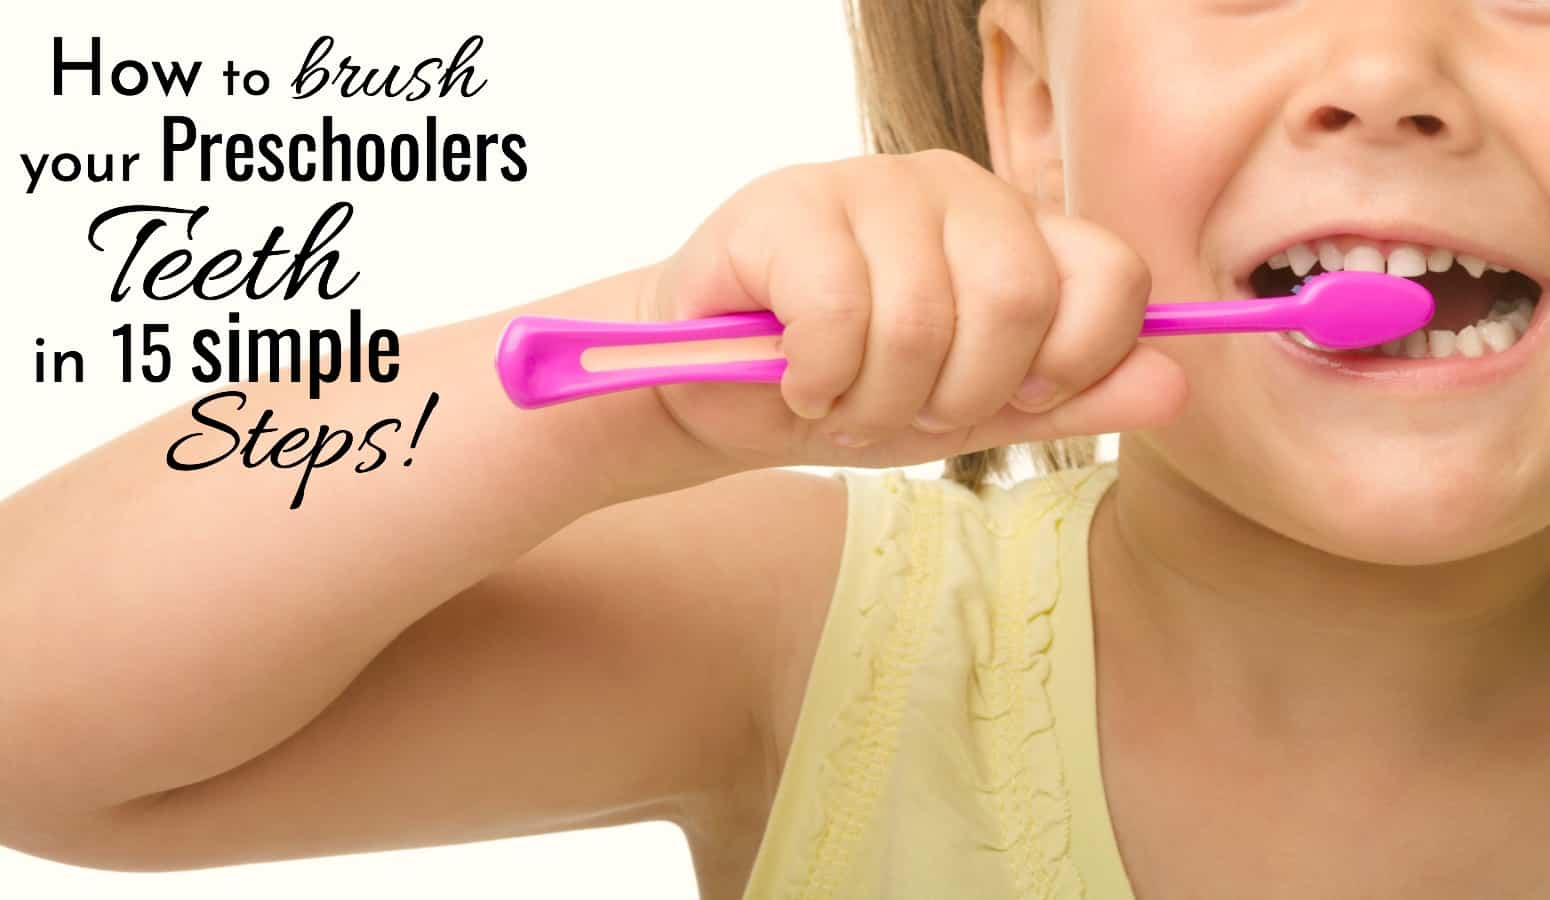 How to brush your preschoolers teeth in 15 simple steps. Little girl brushing teeth.